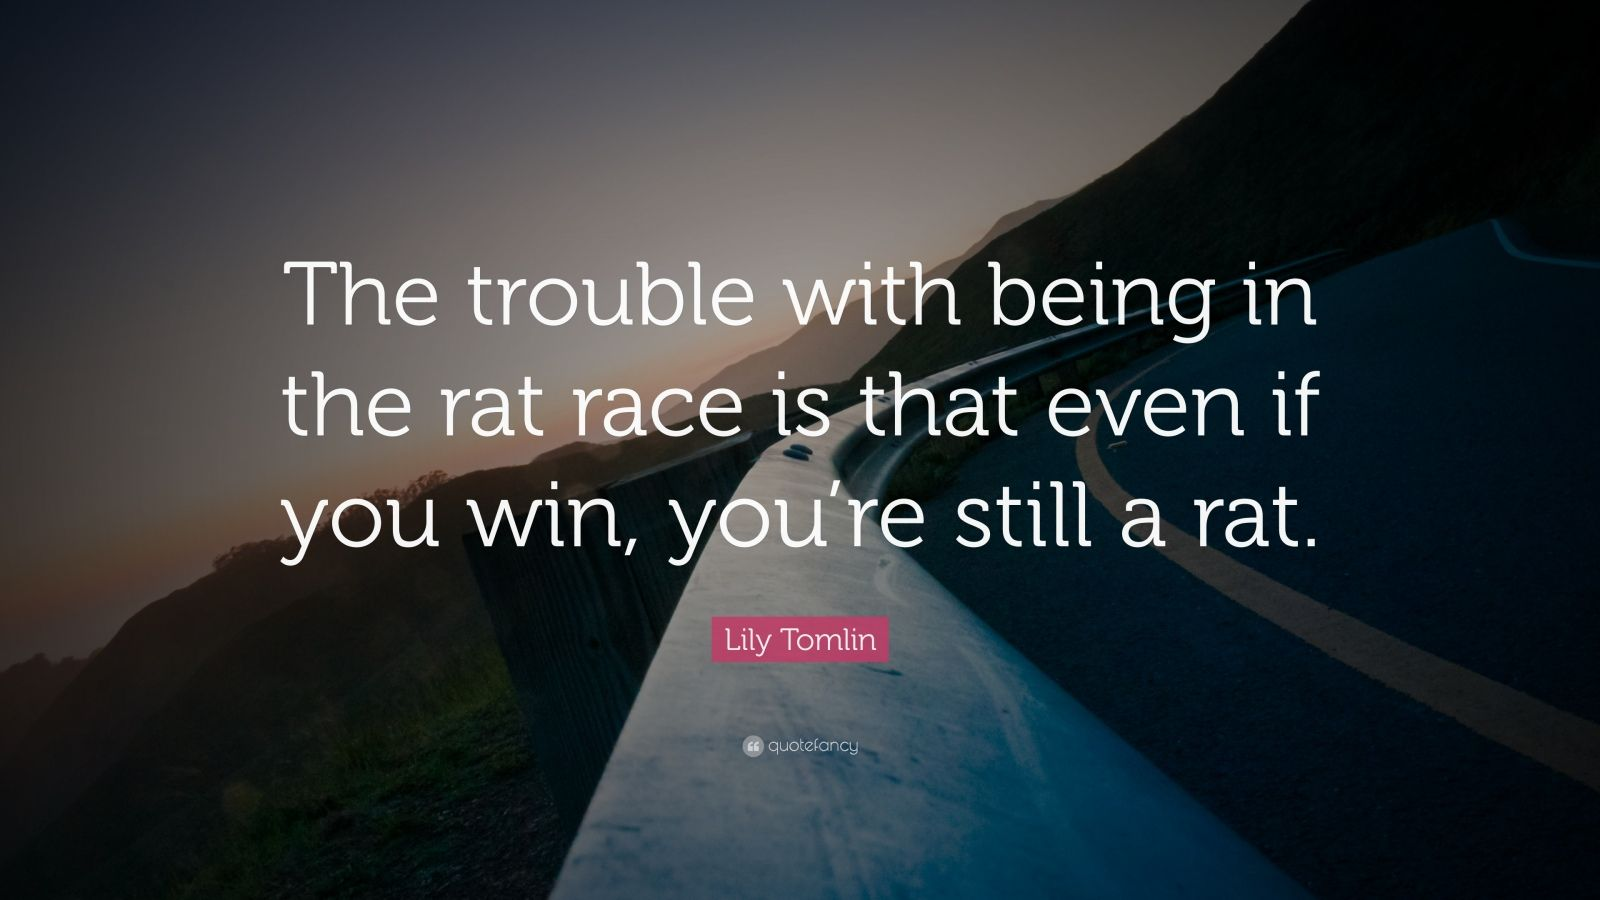 """Lily Tomlin Quote: """"The trouble with being in the rat race is that even if you win, you're still a rat."""""""